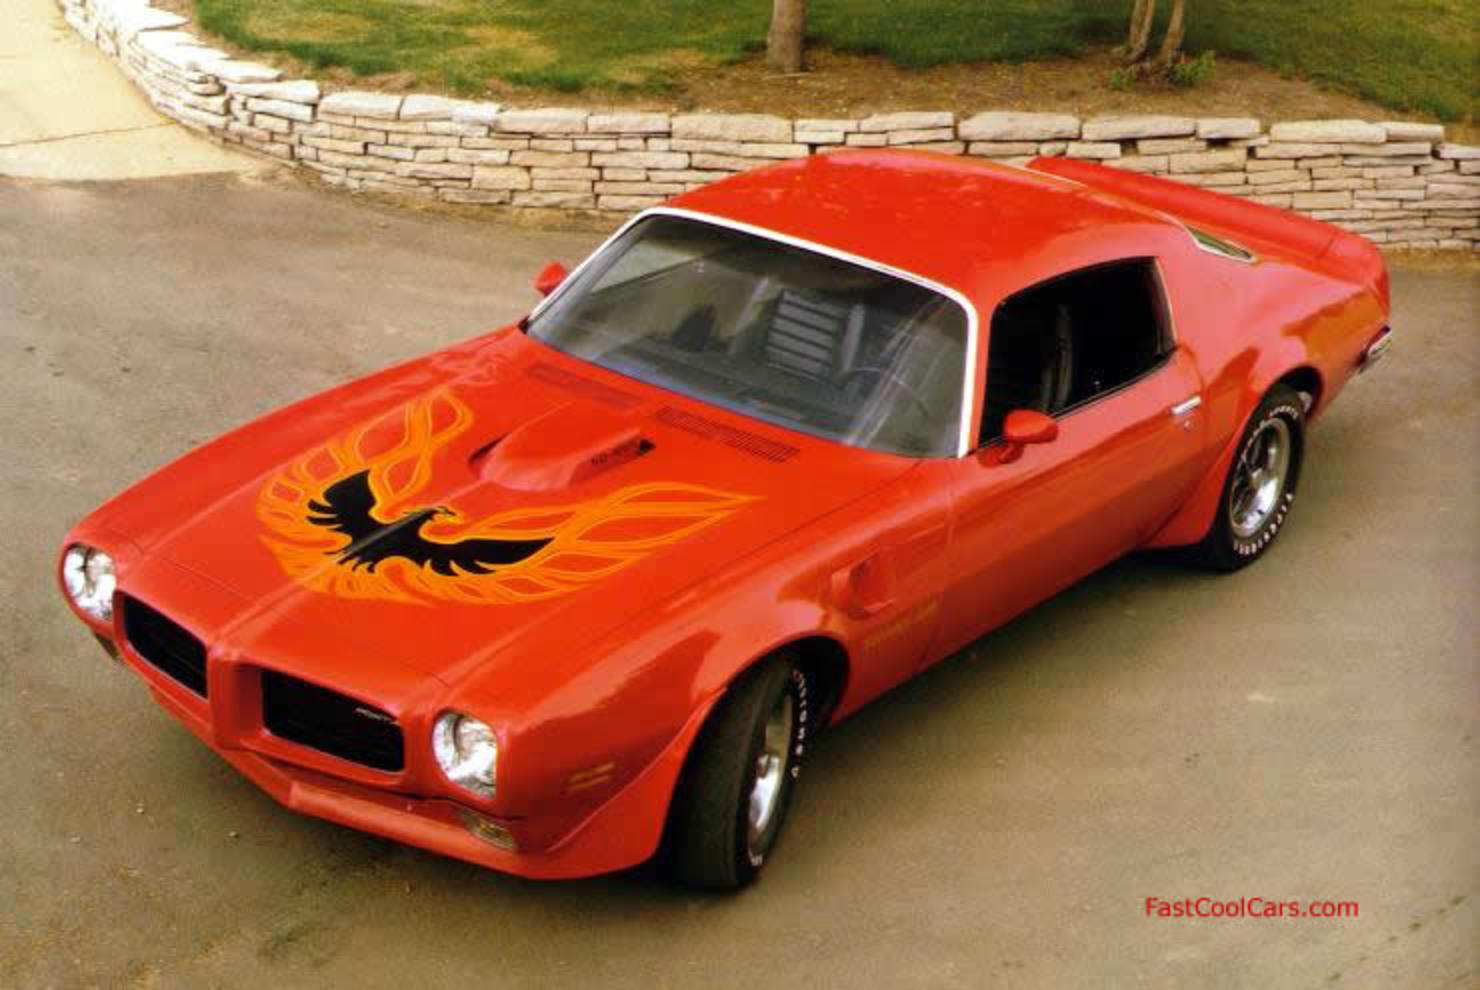 Pontiac firebird transam (493 comments) Views 24502 Rating 54